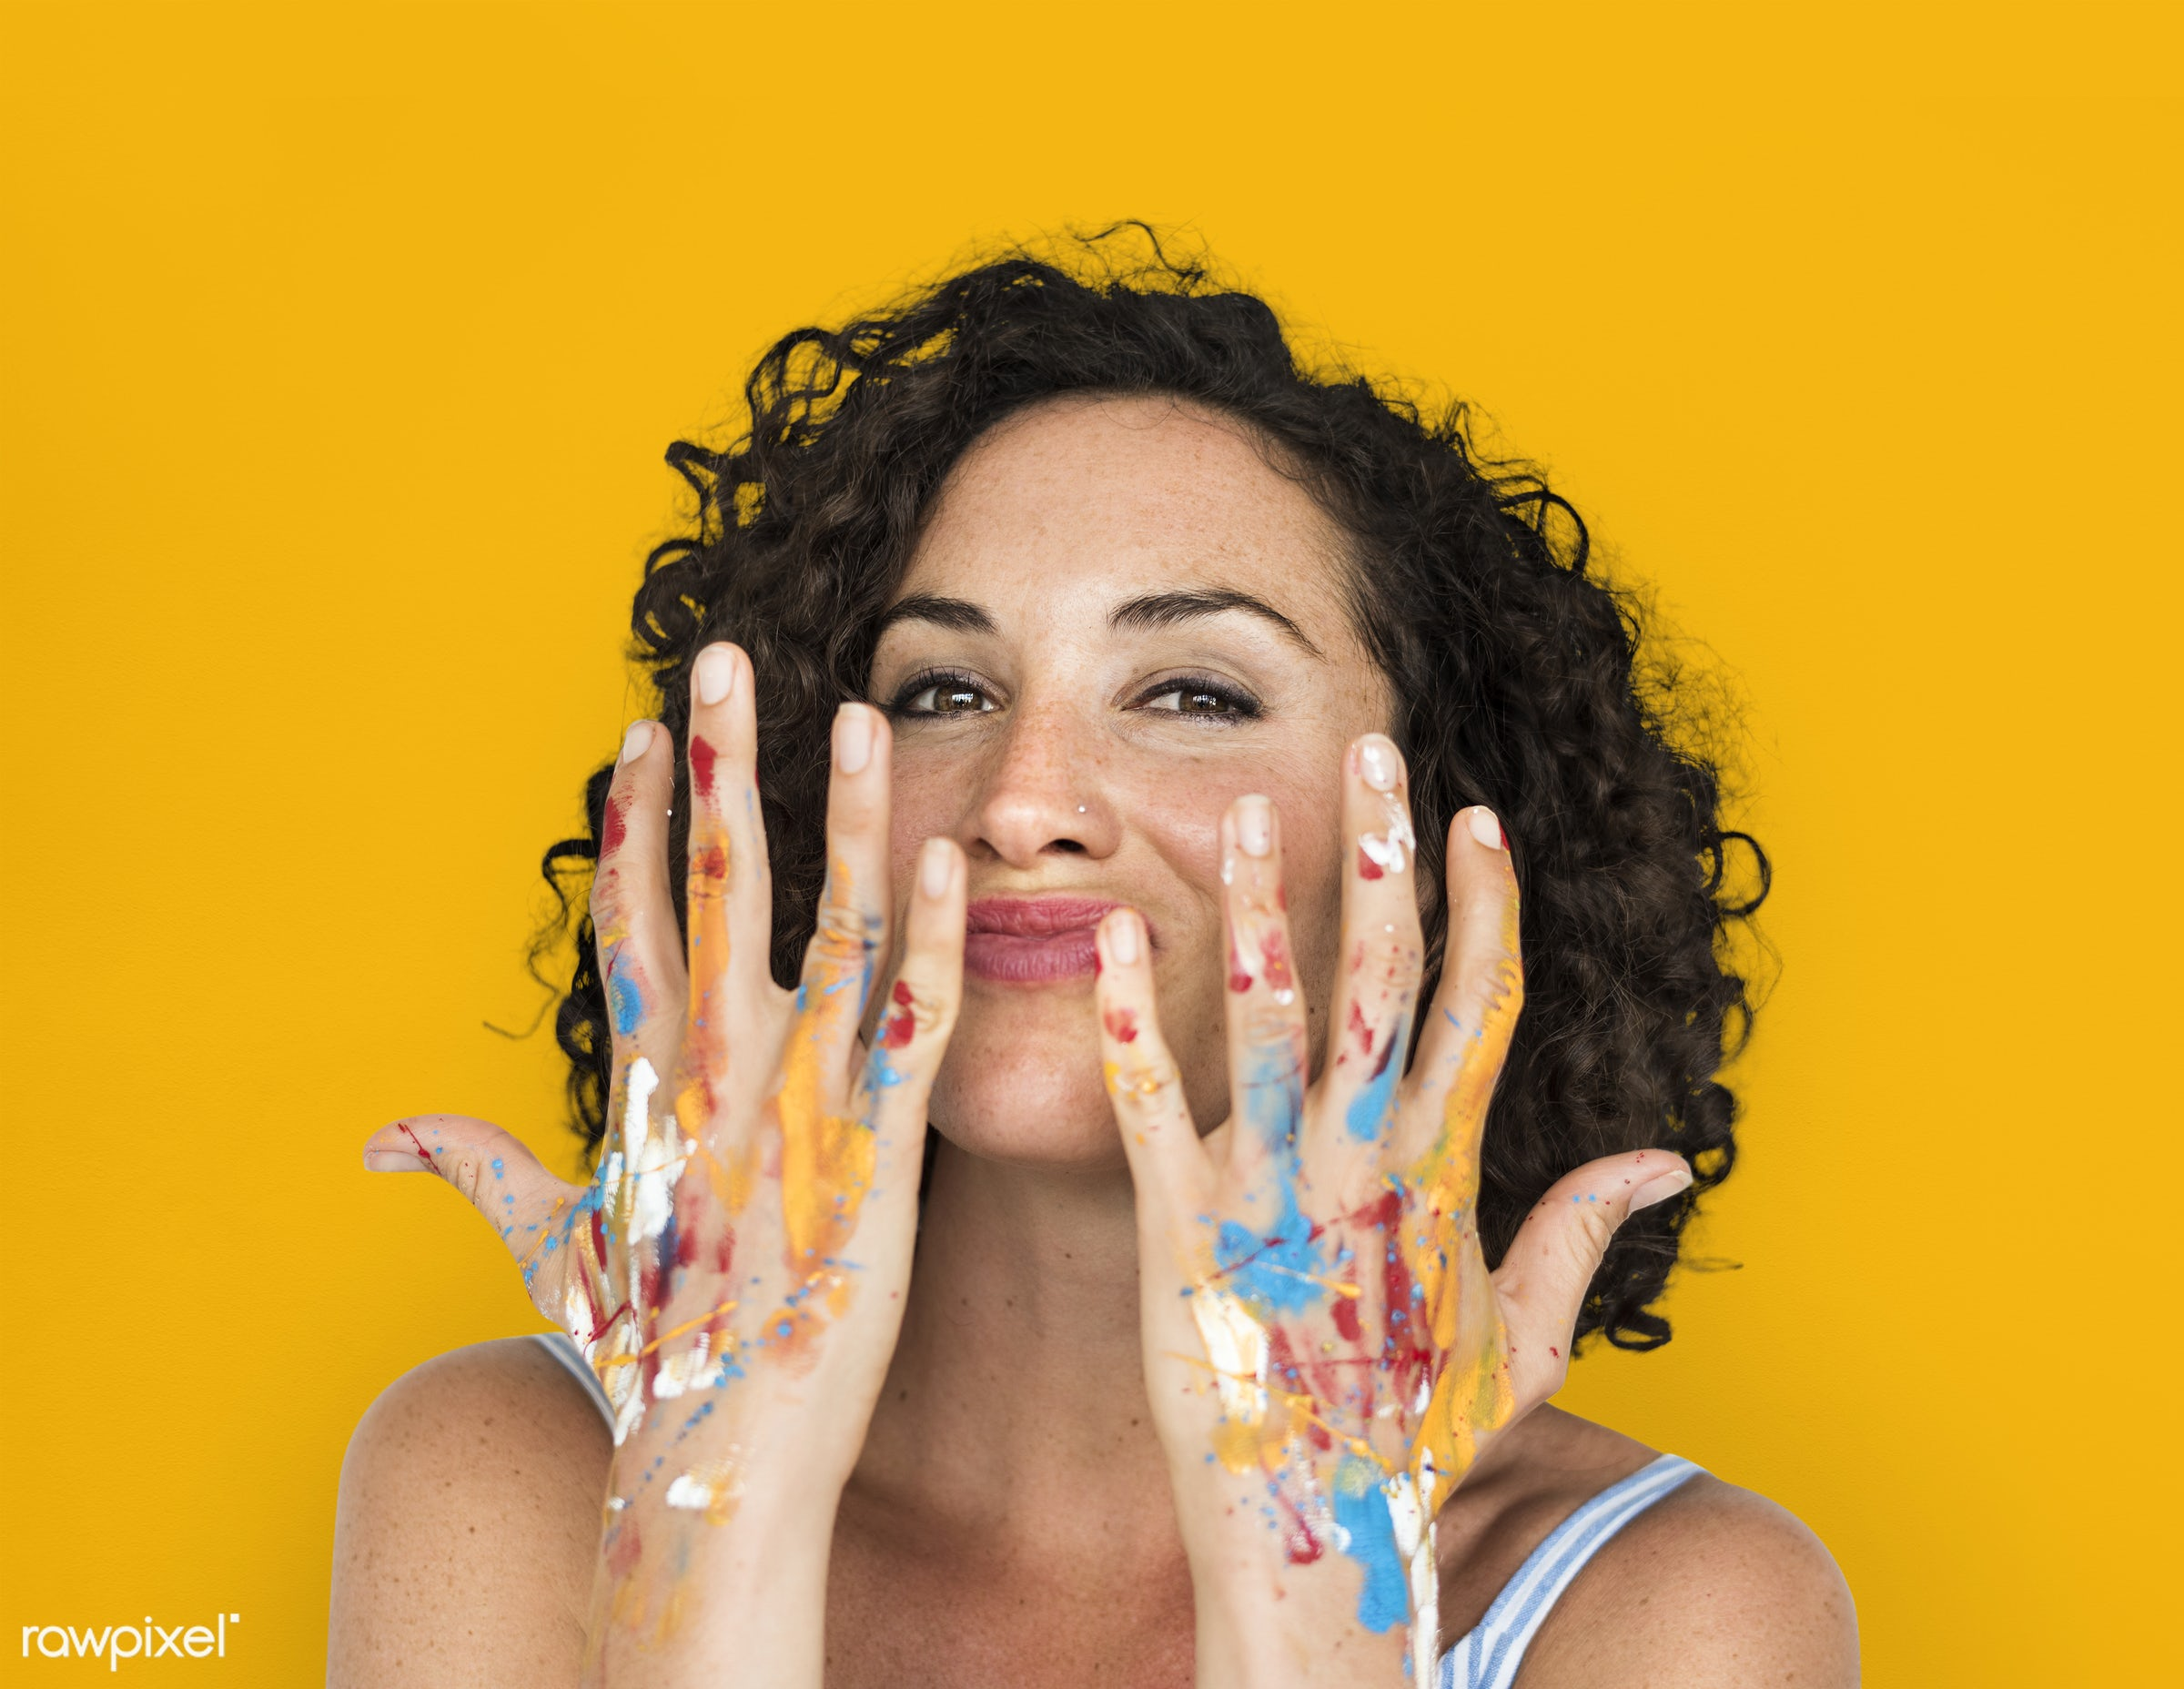 studio, expression, person, arts, curly hairstyle, yellow, people, curly, woman, smile, cheerful, smiling, isolated, orange...